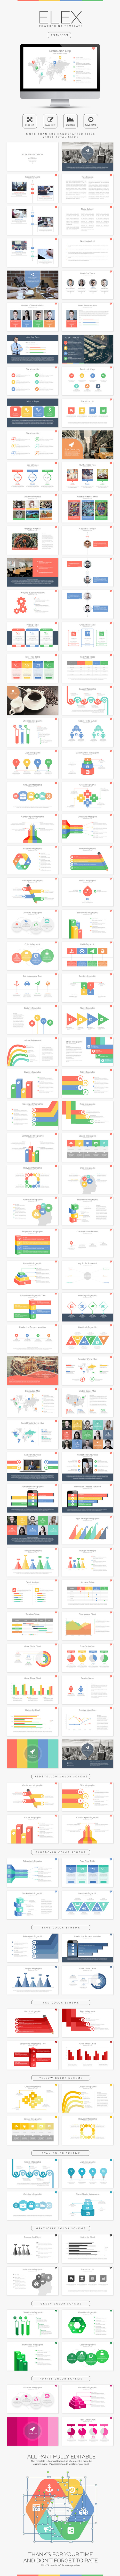 Elex Multipurpose PowerPoint Presentation Template - Business PowerPoint Templates